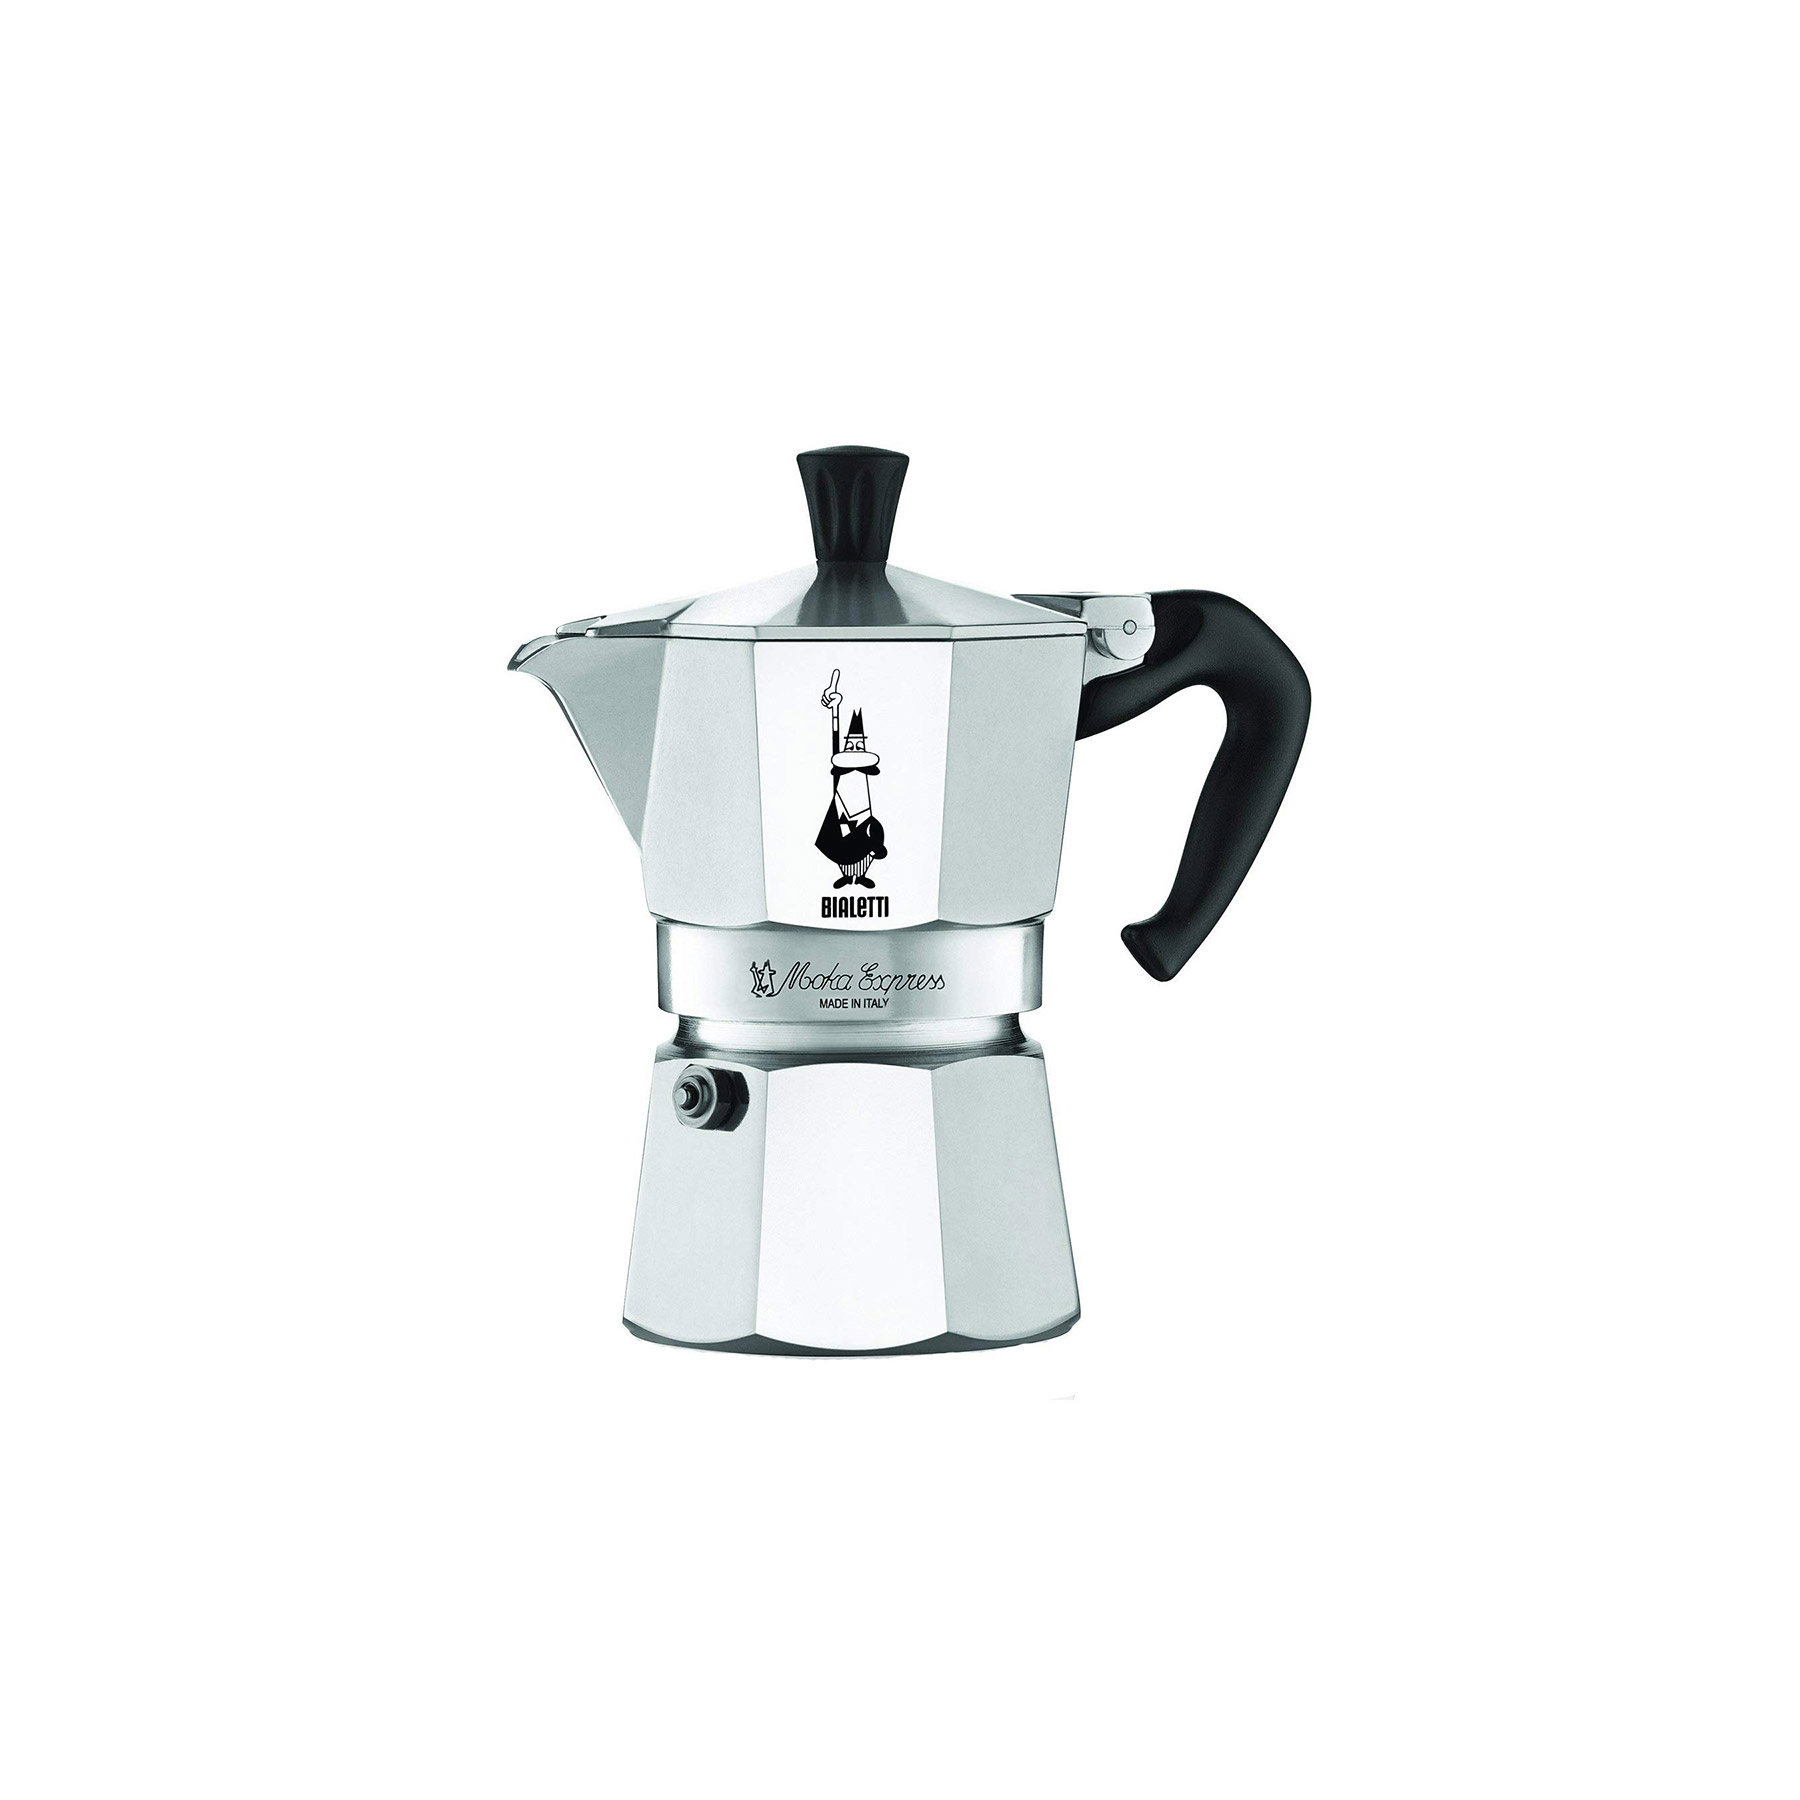 The Original Bialetti Moka Coffee Maker